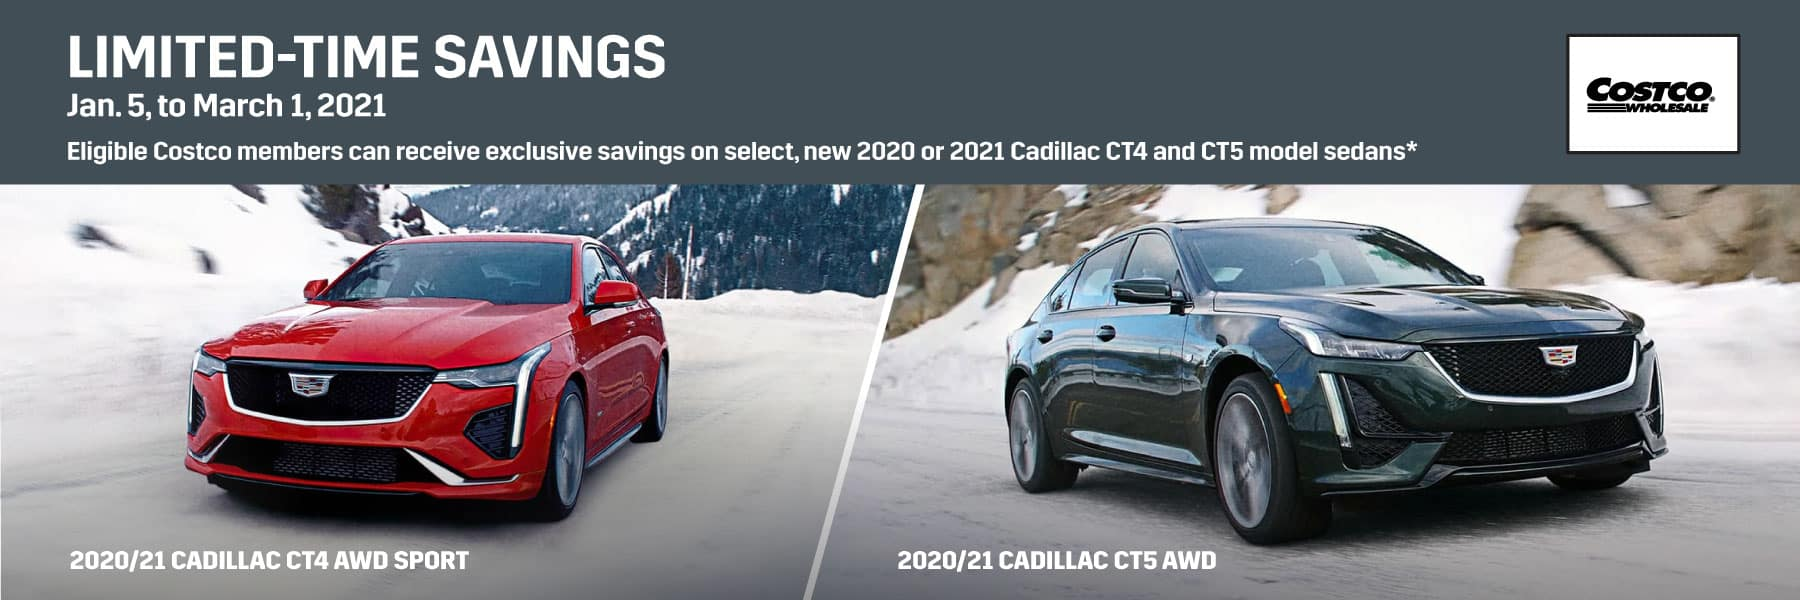 Limited-Time Savings - Eligible Costco members can receive exclusive savings on select, new 2020 or 2021 Cadillac CT4 and CT5 model sedans*